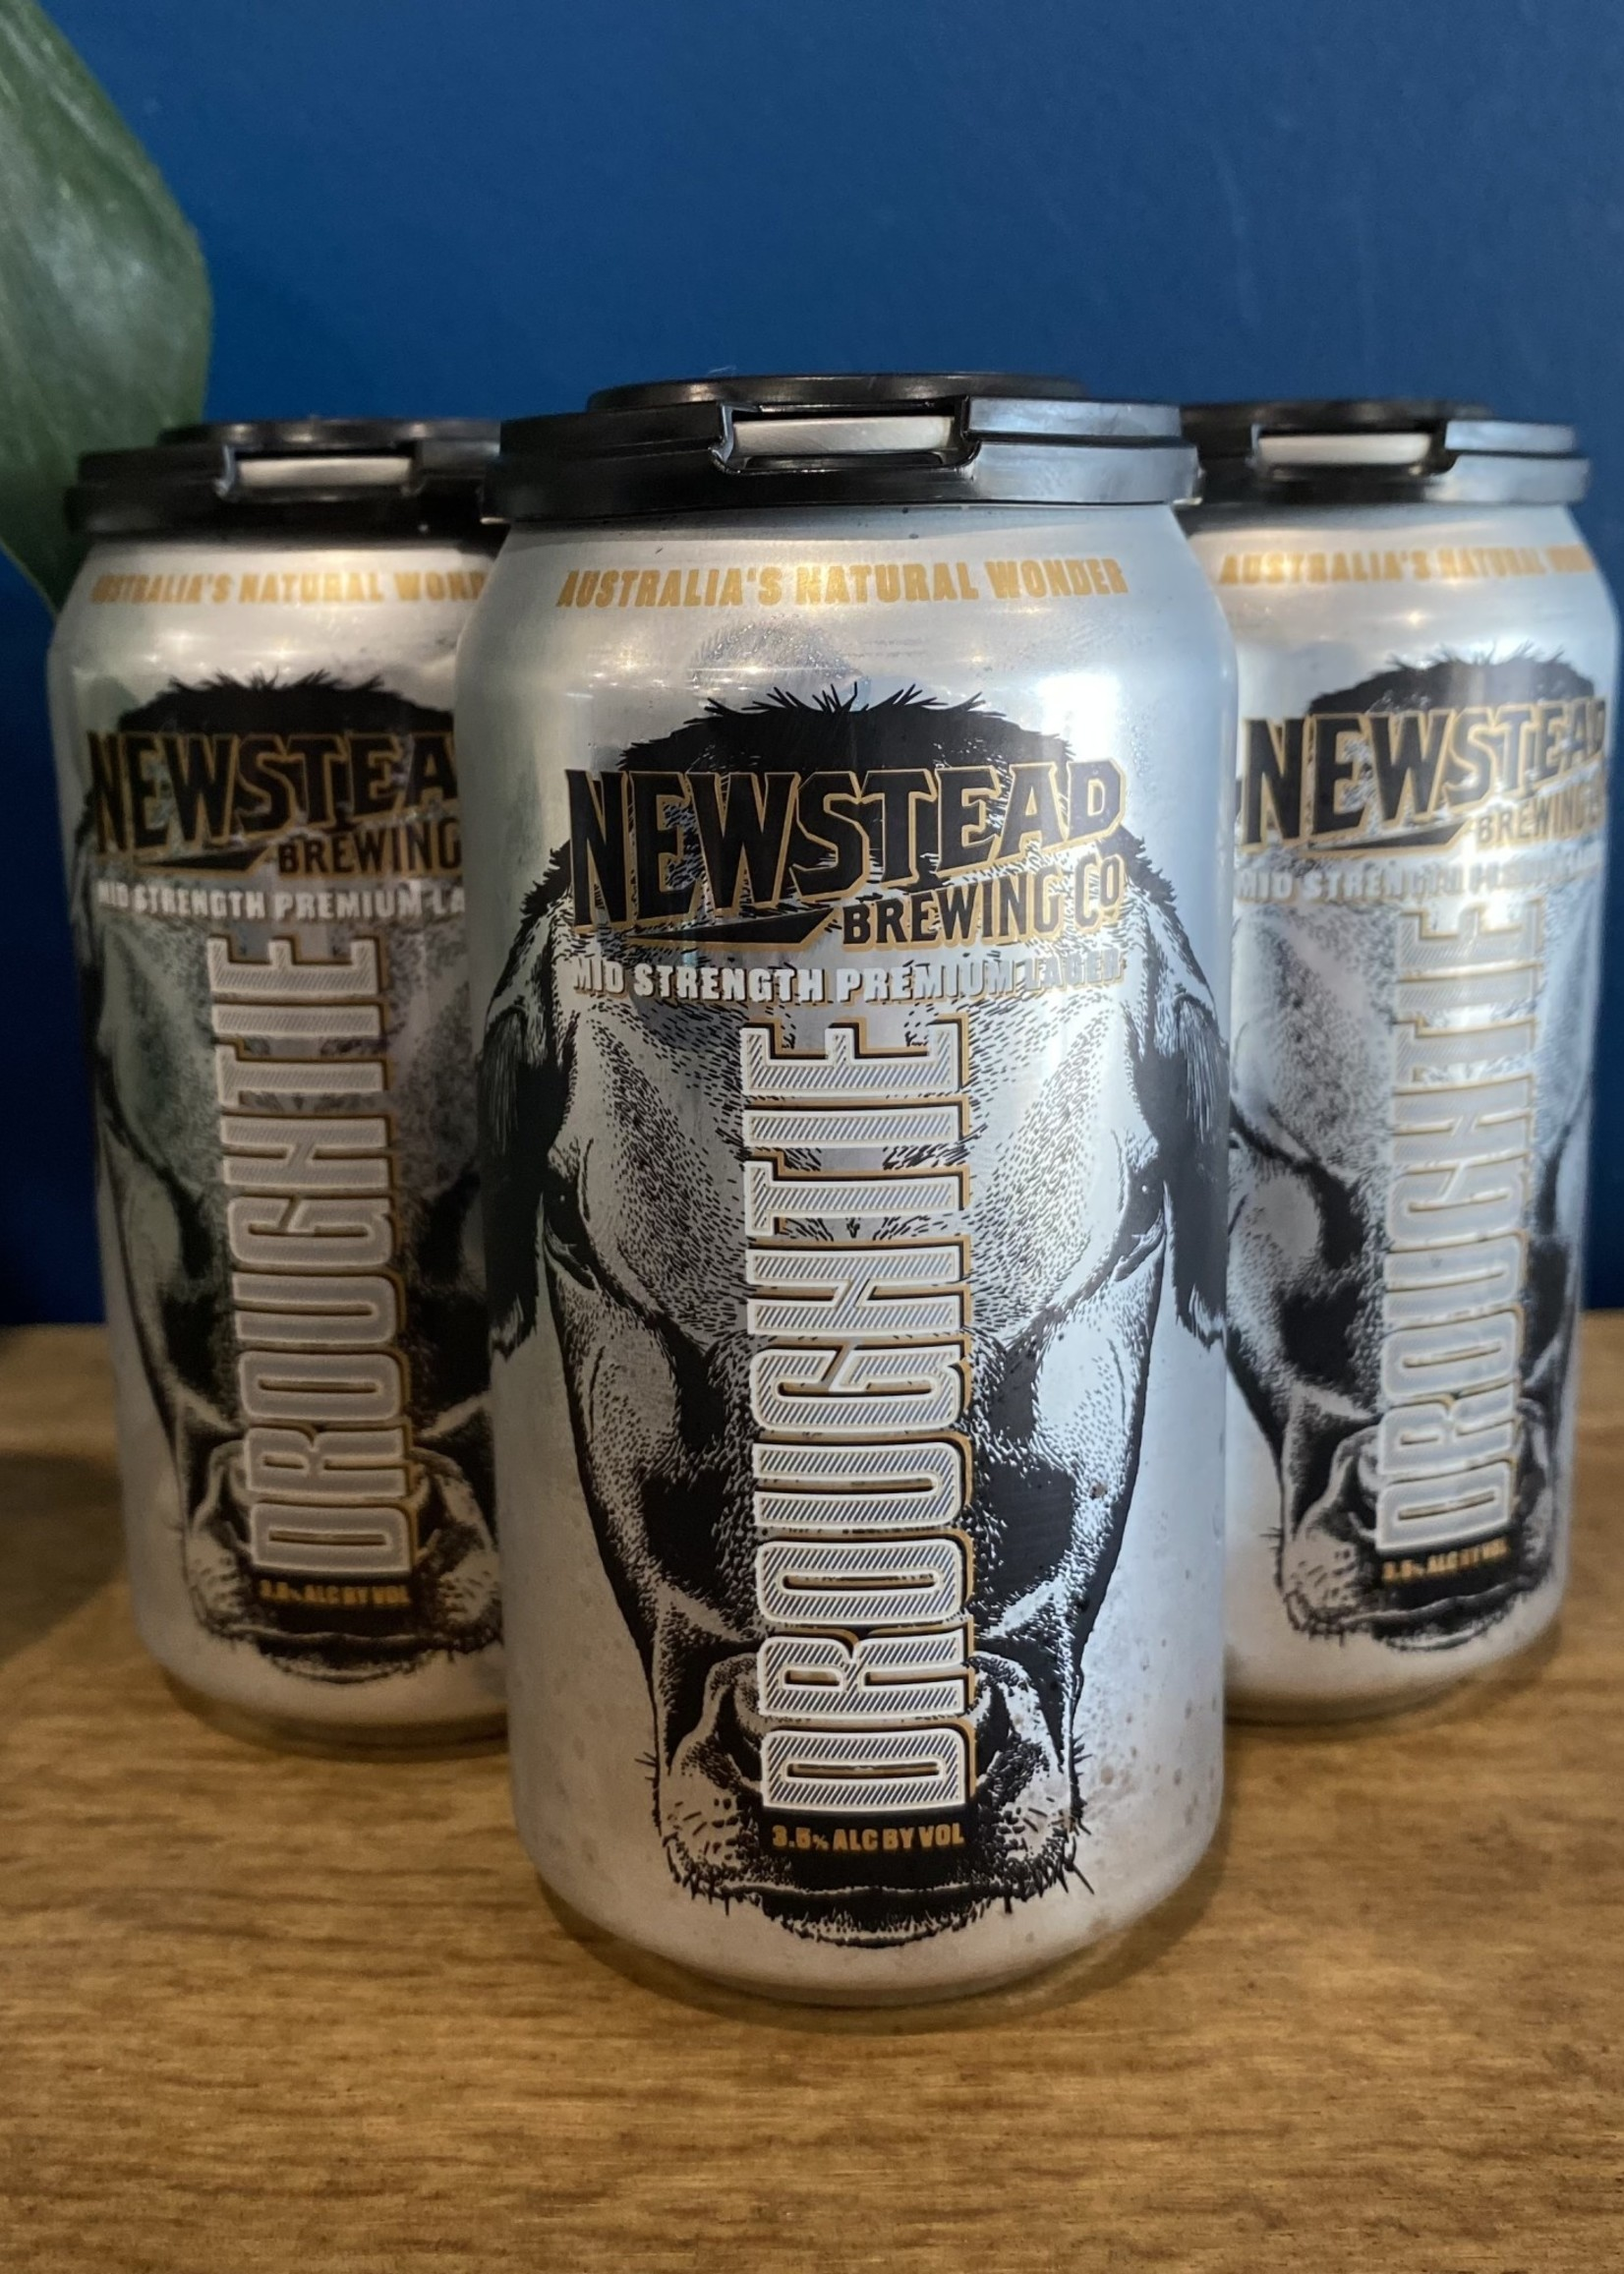 Newstead Brewing Co. 'Droughtie' Mid Strength Lager